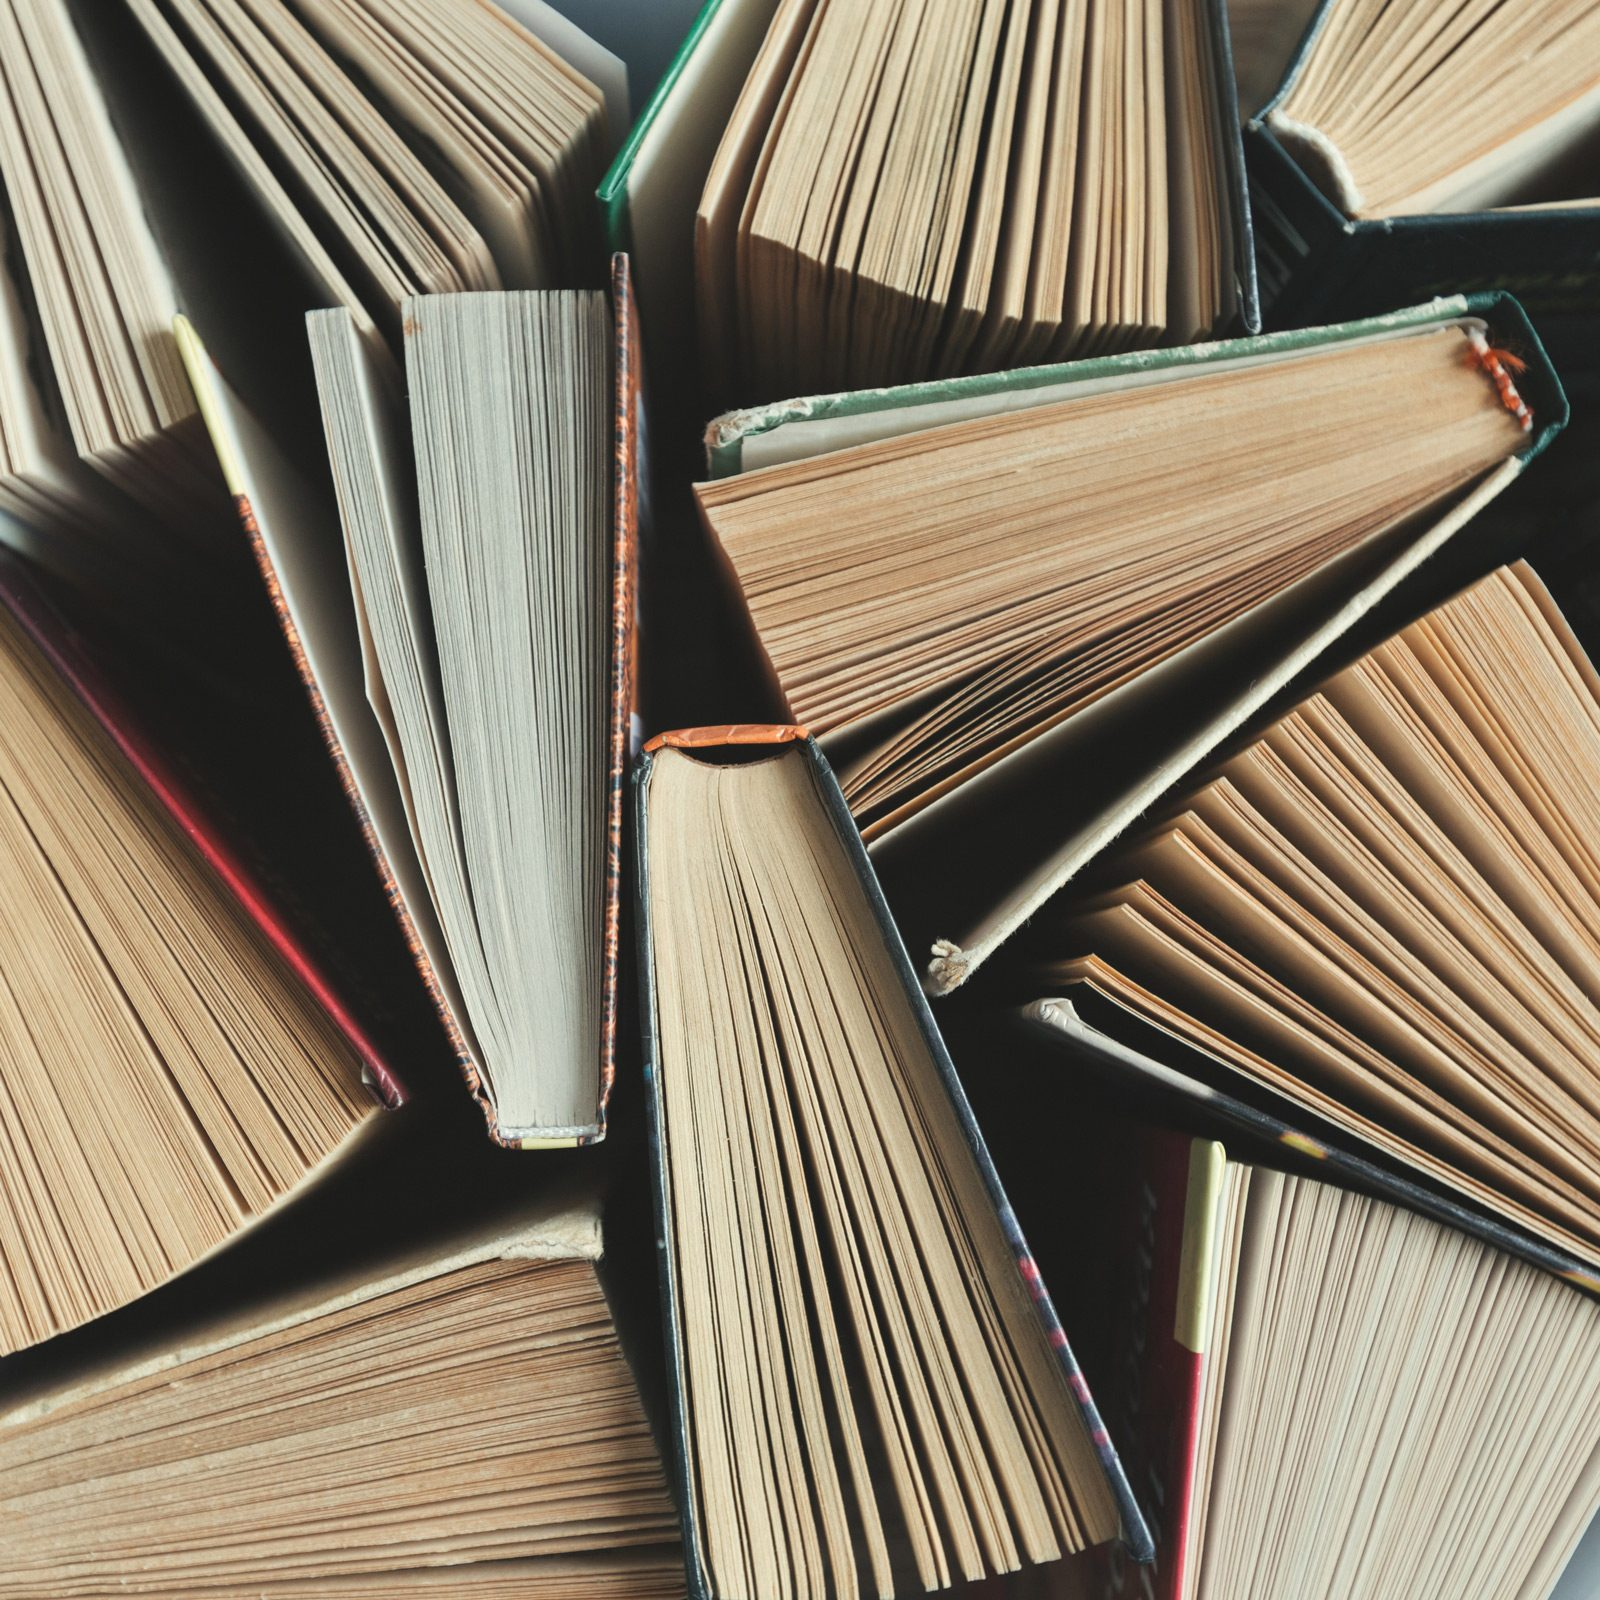 15 Books To Read While Social Distancing